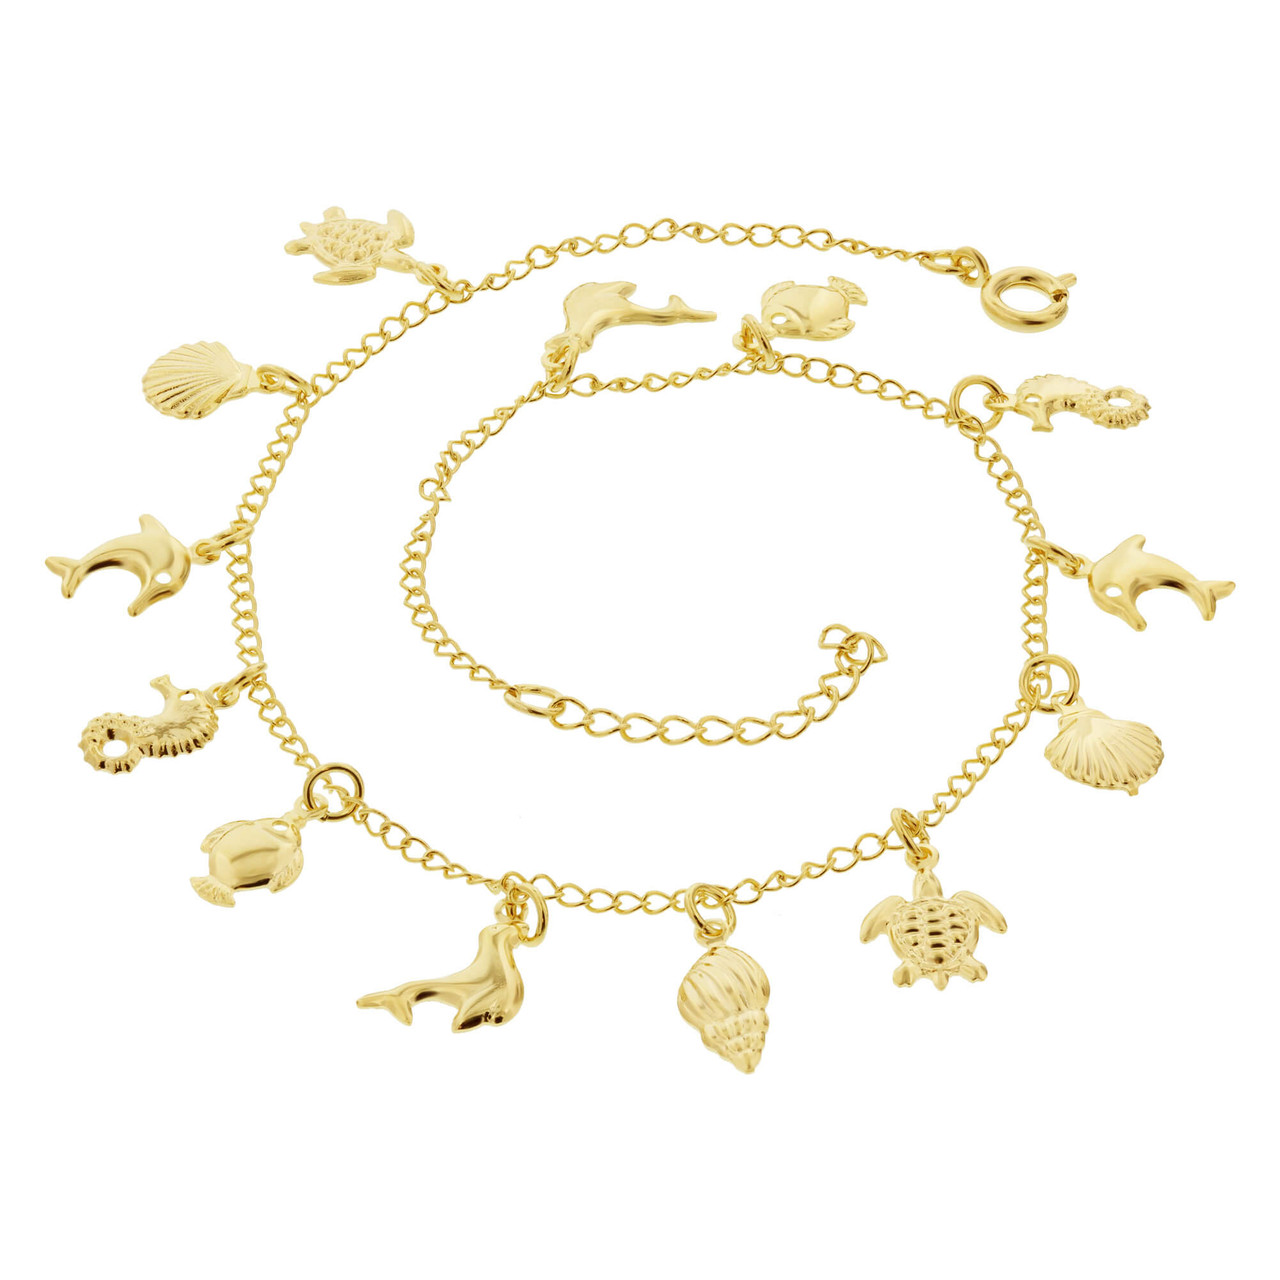 18k Gold Overlay Sea Life Foot Chain Anklet 10 to 11 Inch Adjustable